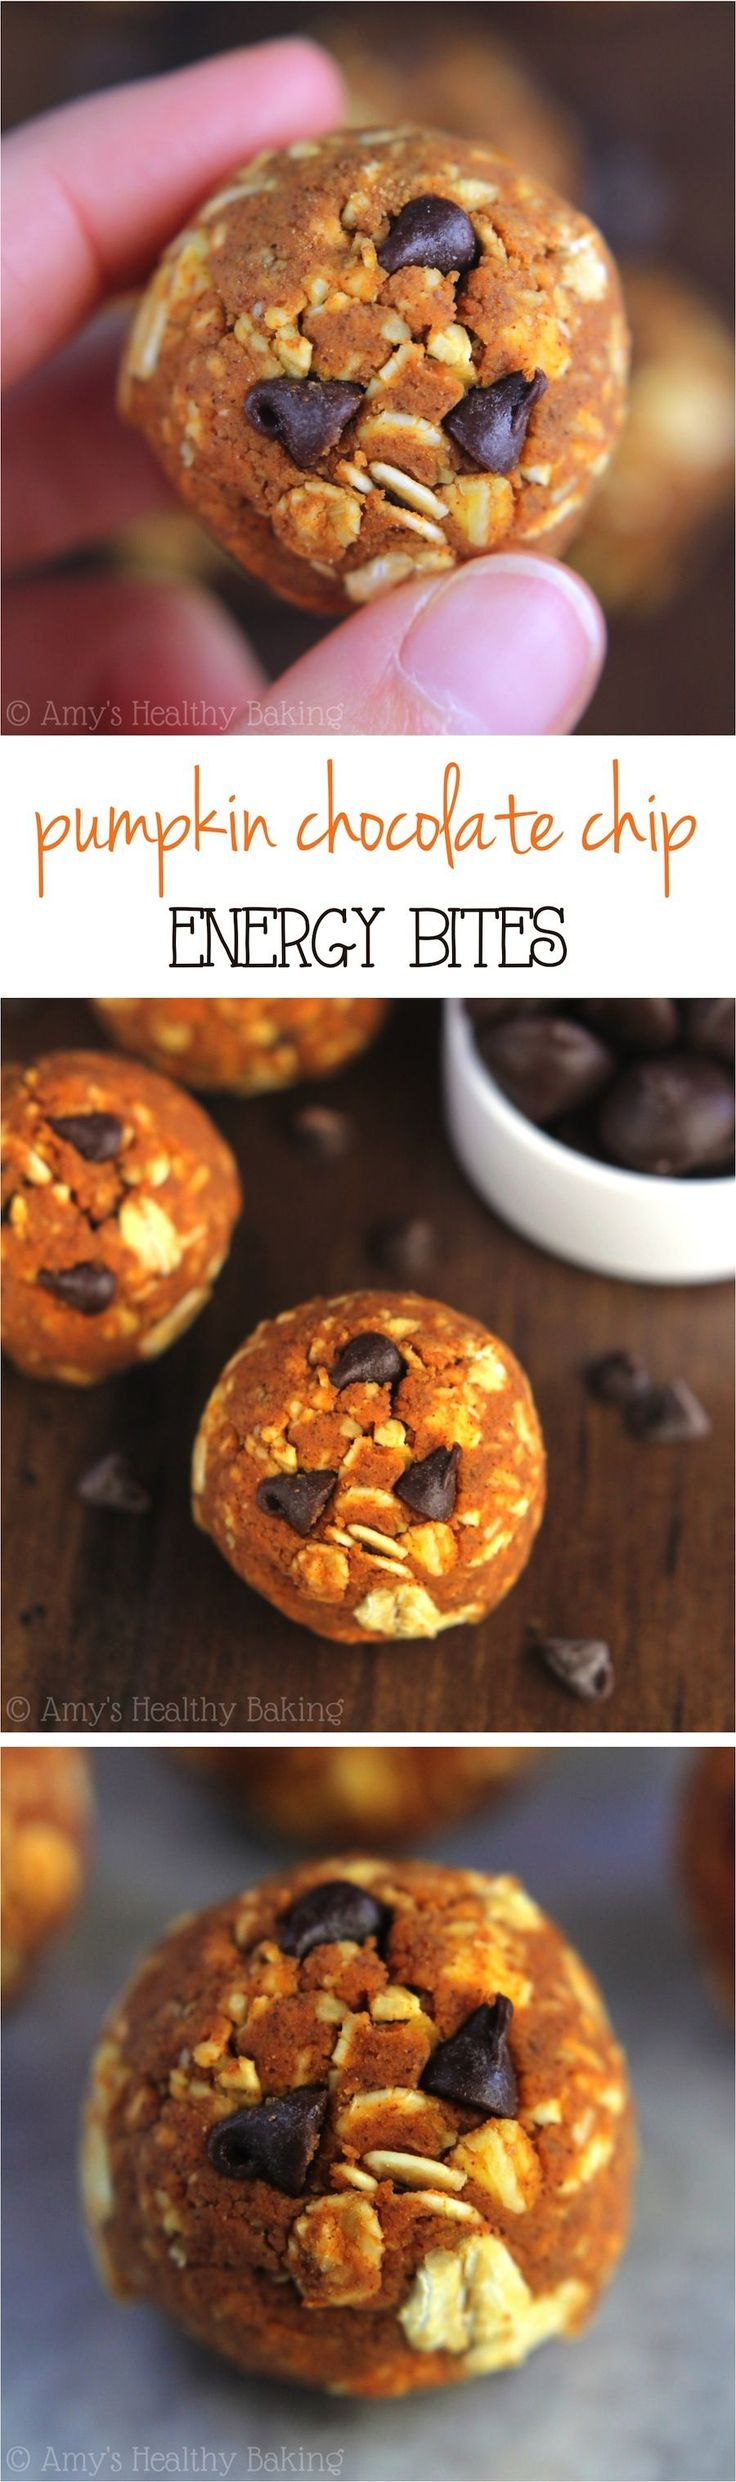 Pumpkin Chocolate Chip Energy Bites - Like a healthy snack version of the cookies! Only 6 ingredients and almost 10 grams of protein!